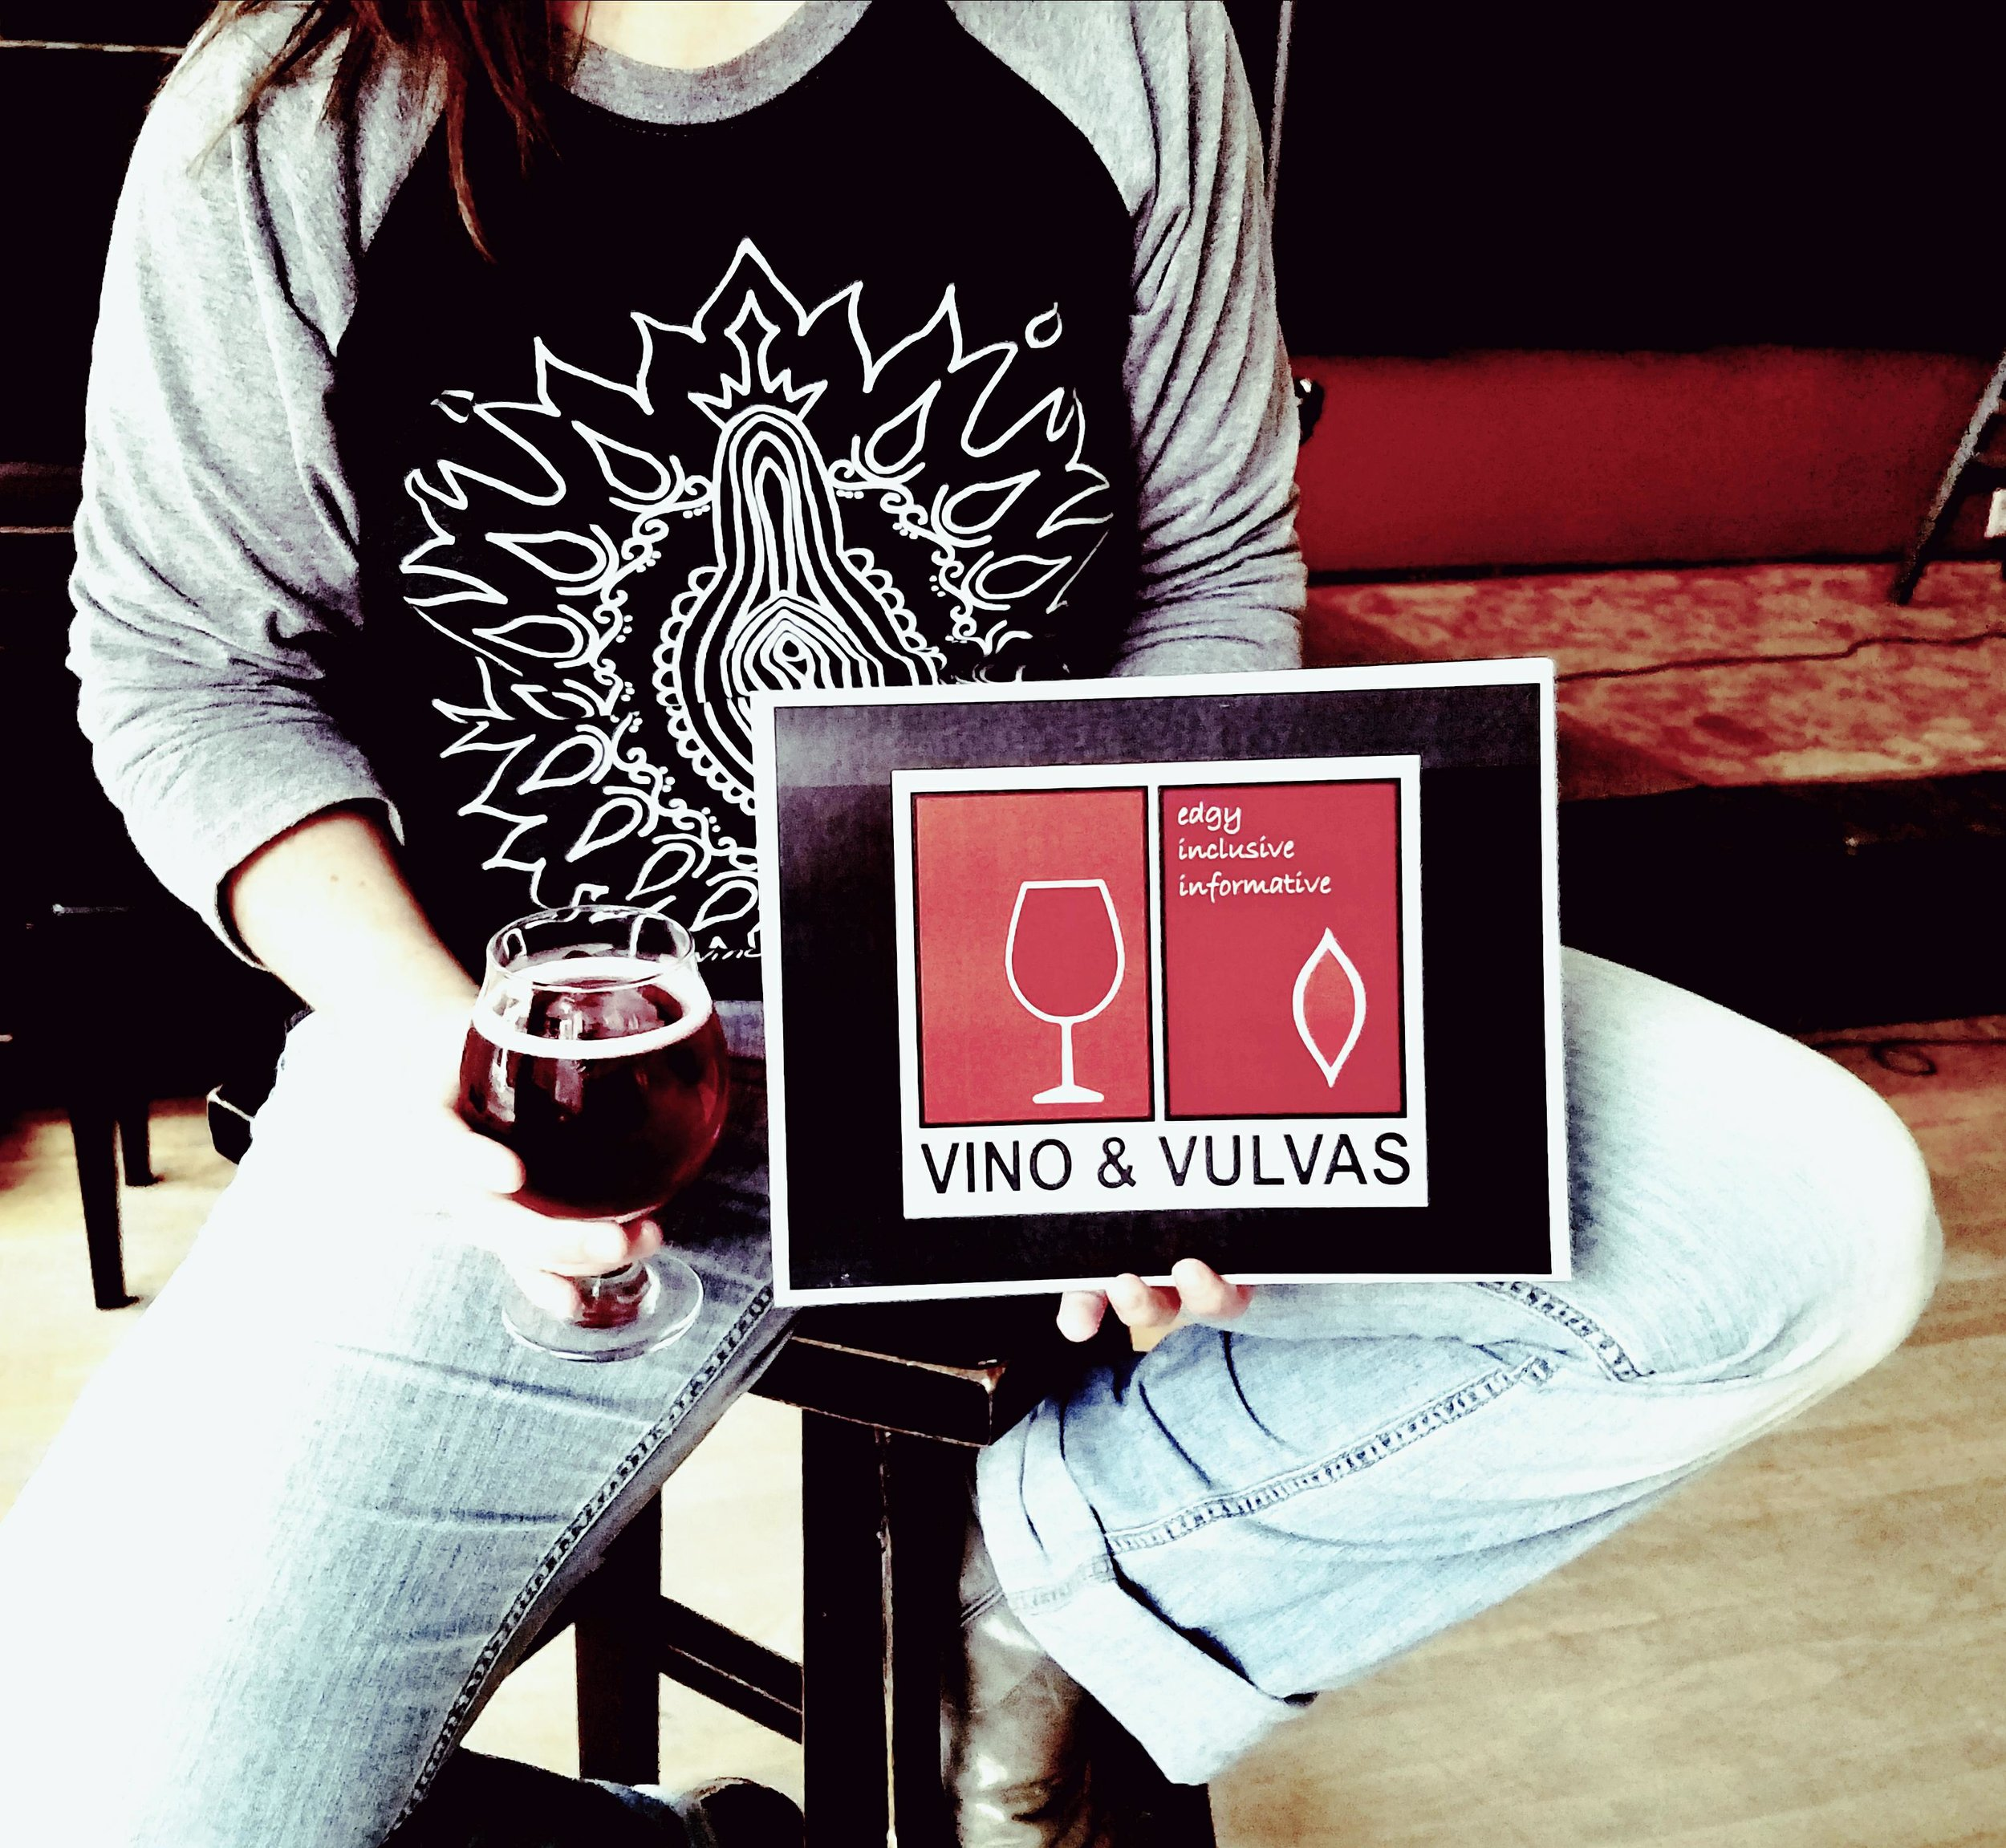 Image of person sitting on bar stool holding a photo of the Vino & Vulvas logo and a glass of cider.